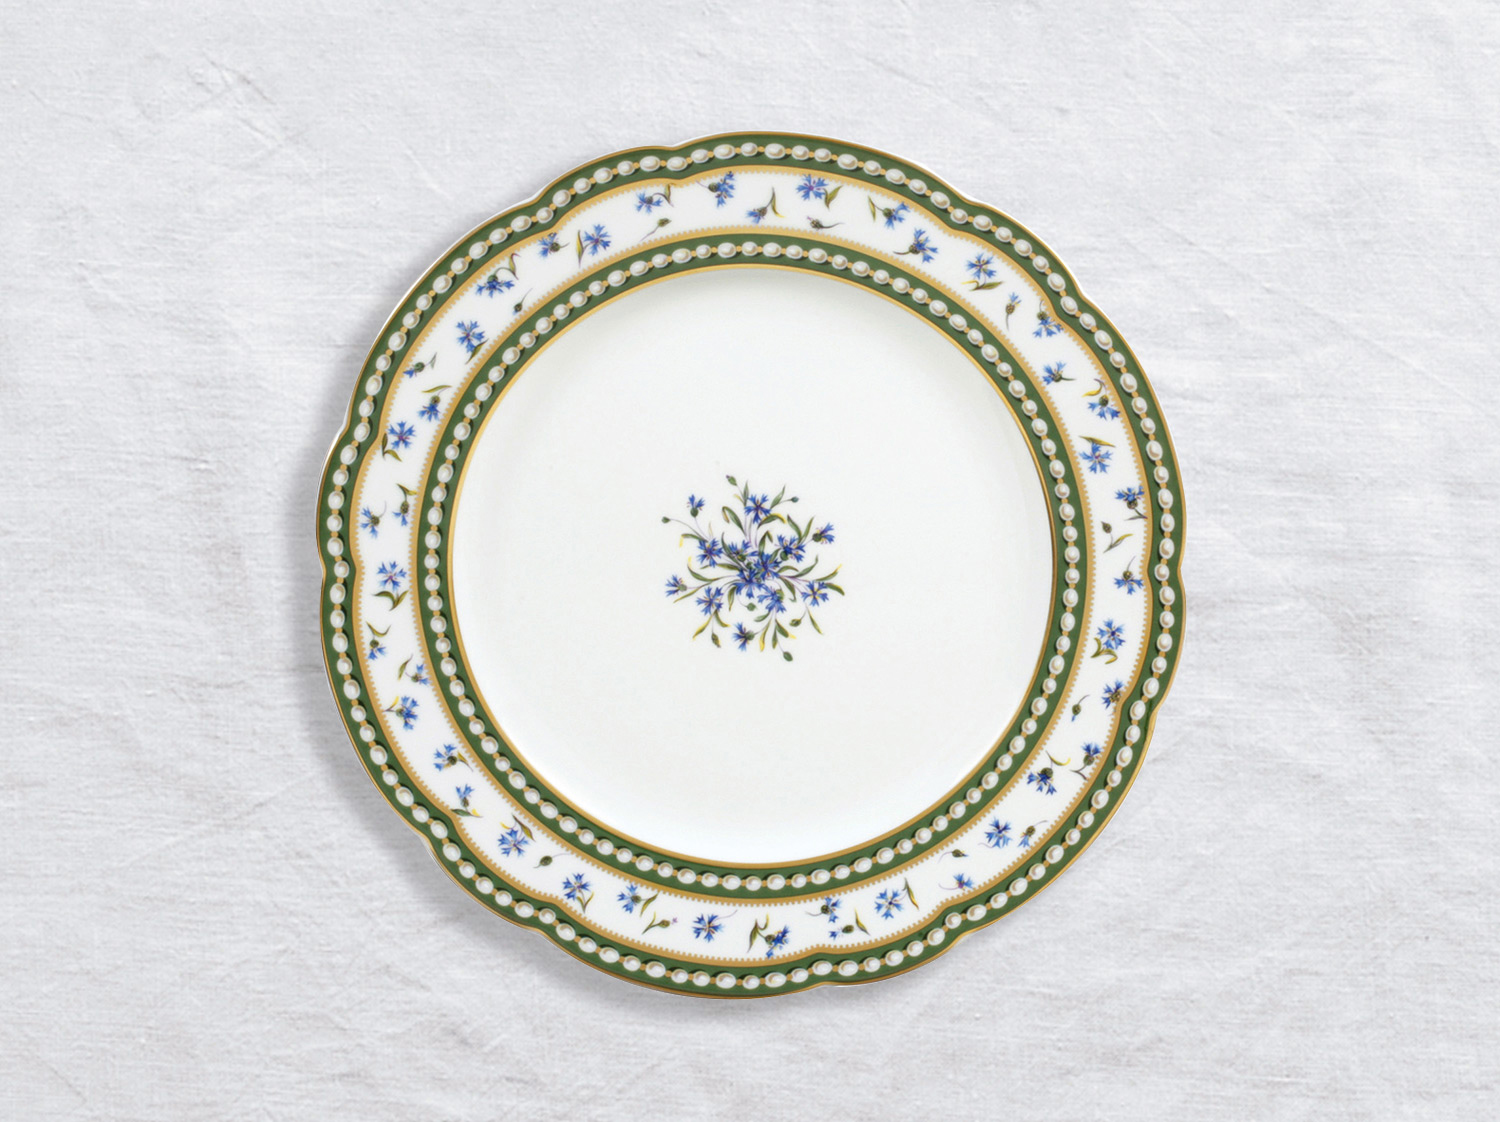 Assiette à dîner 26 cm en porcelaine de la collection Marie-antoinette Bernardaud